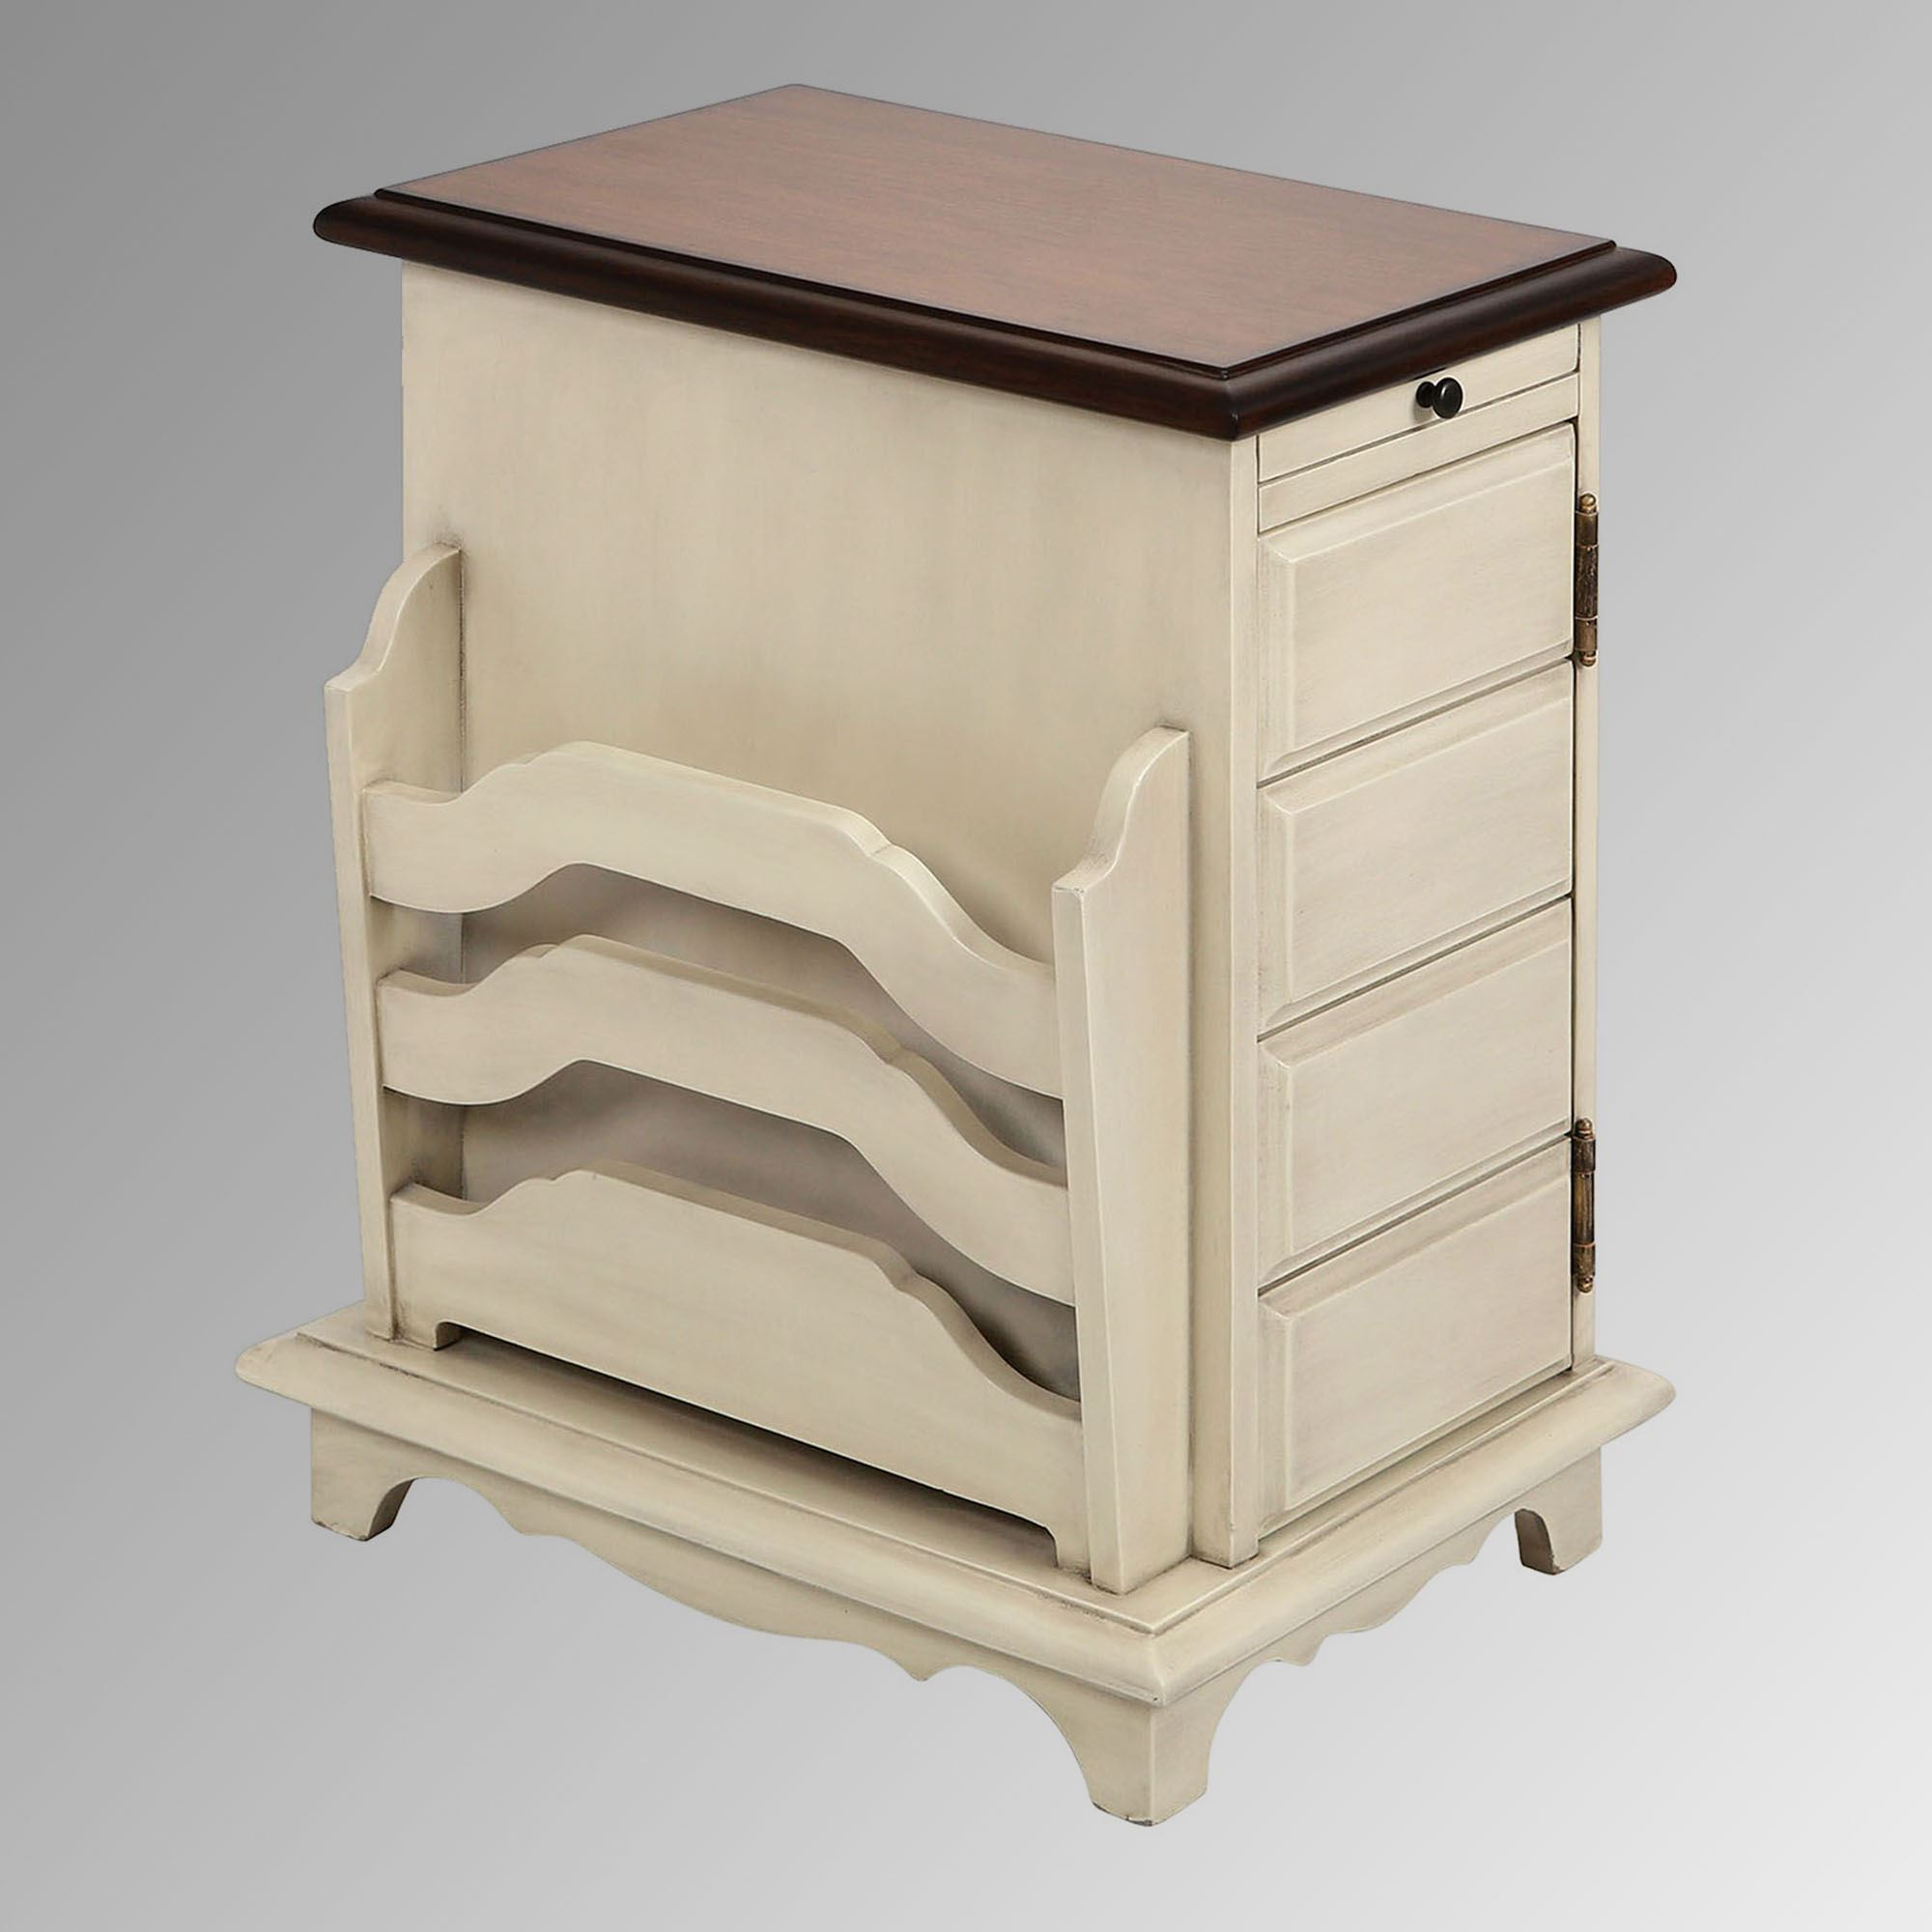 Orsola Antique Cream Wood Chairside Storage Table With